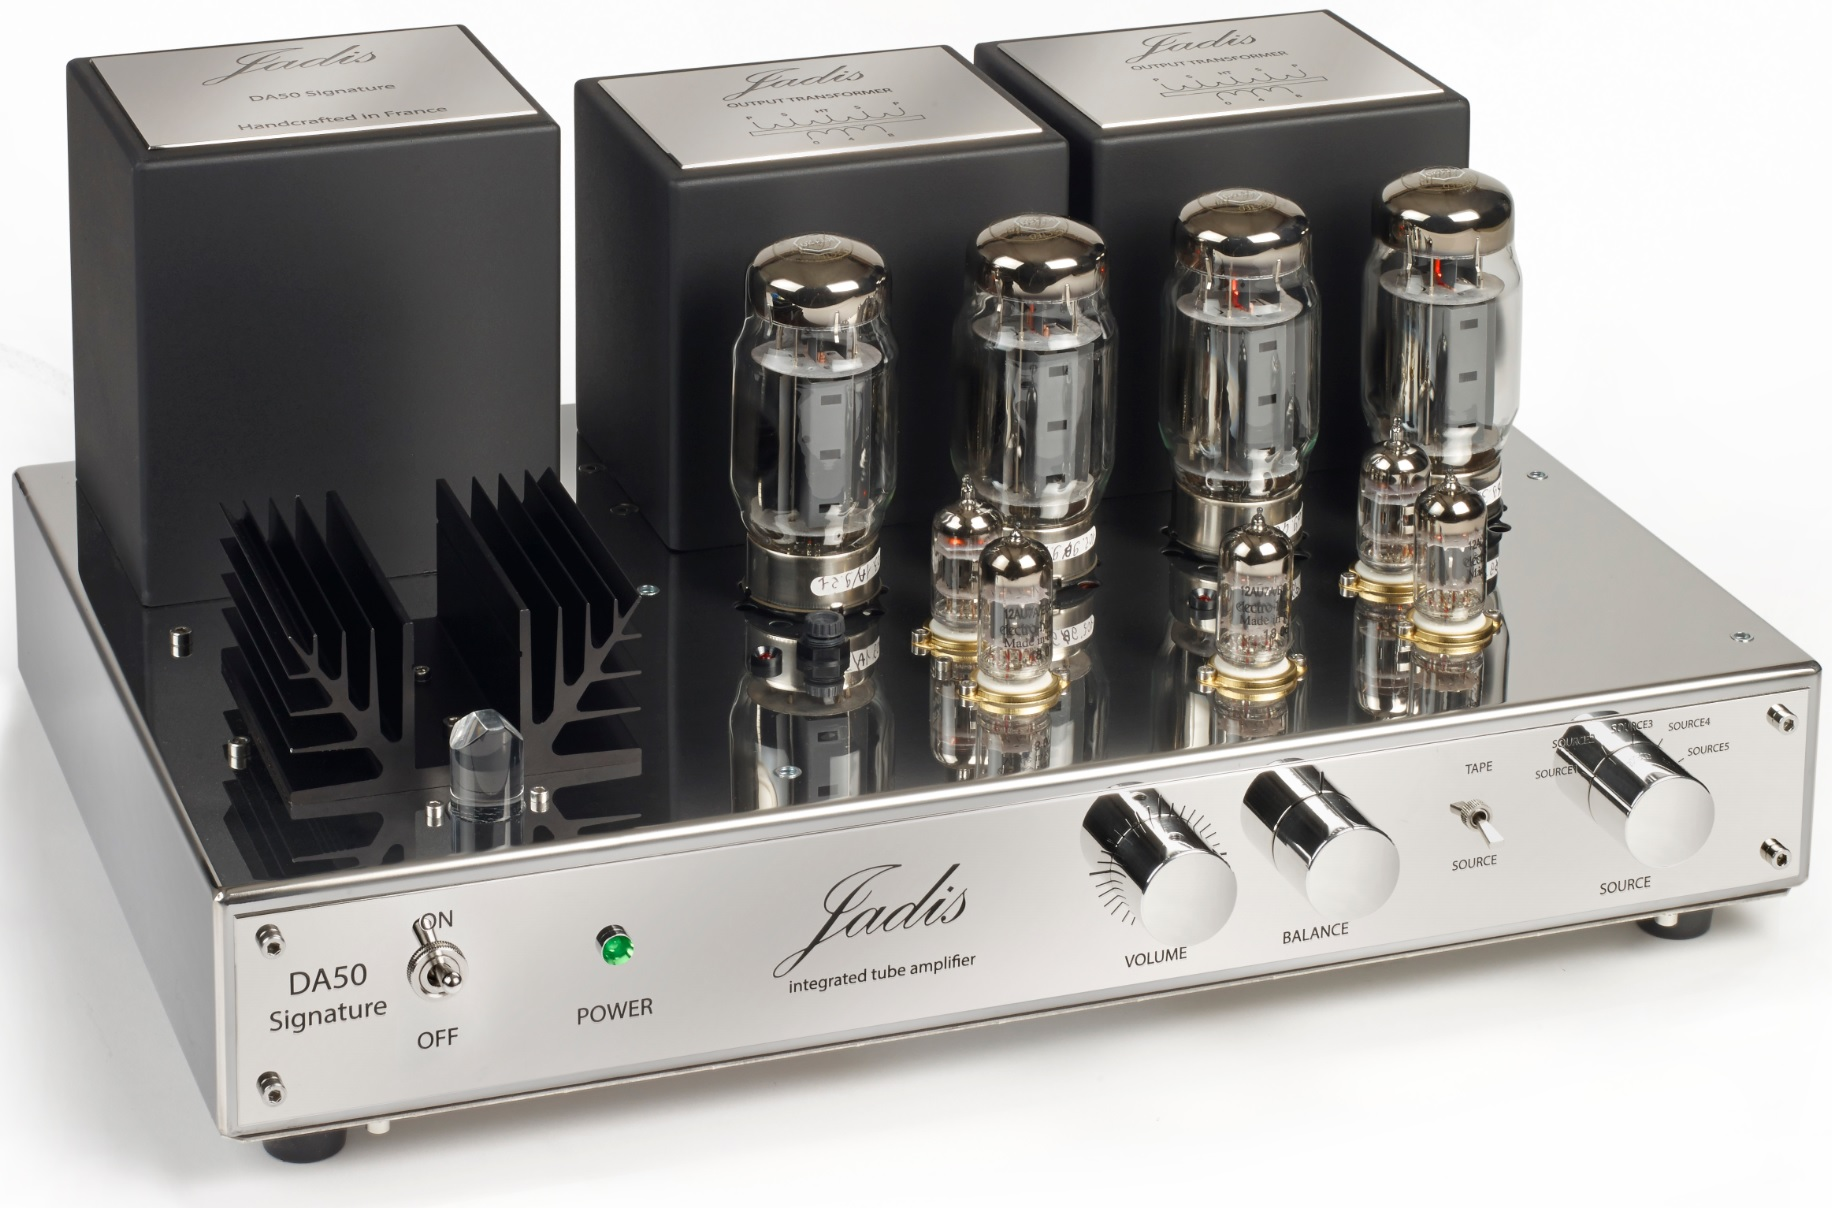 Jadis DA50S integrated amplifier